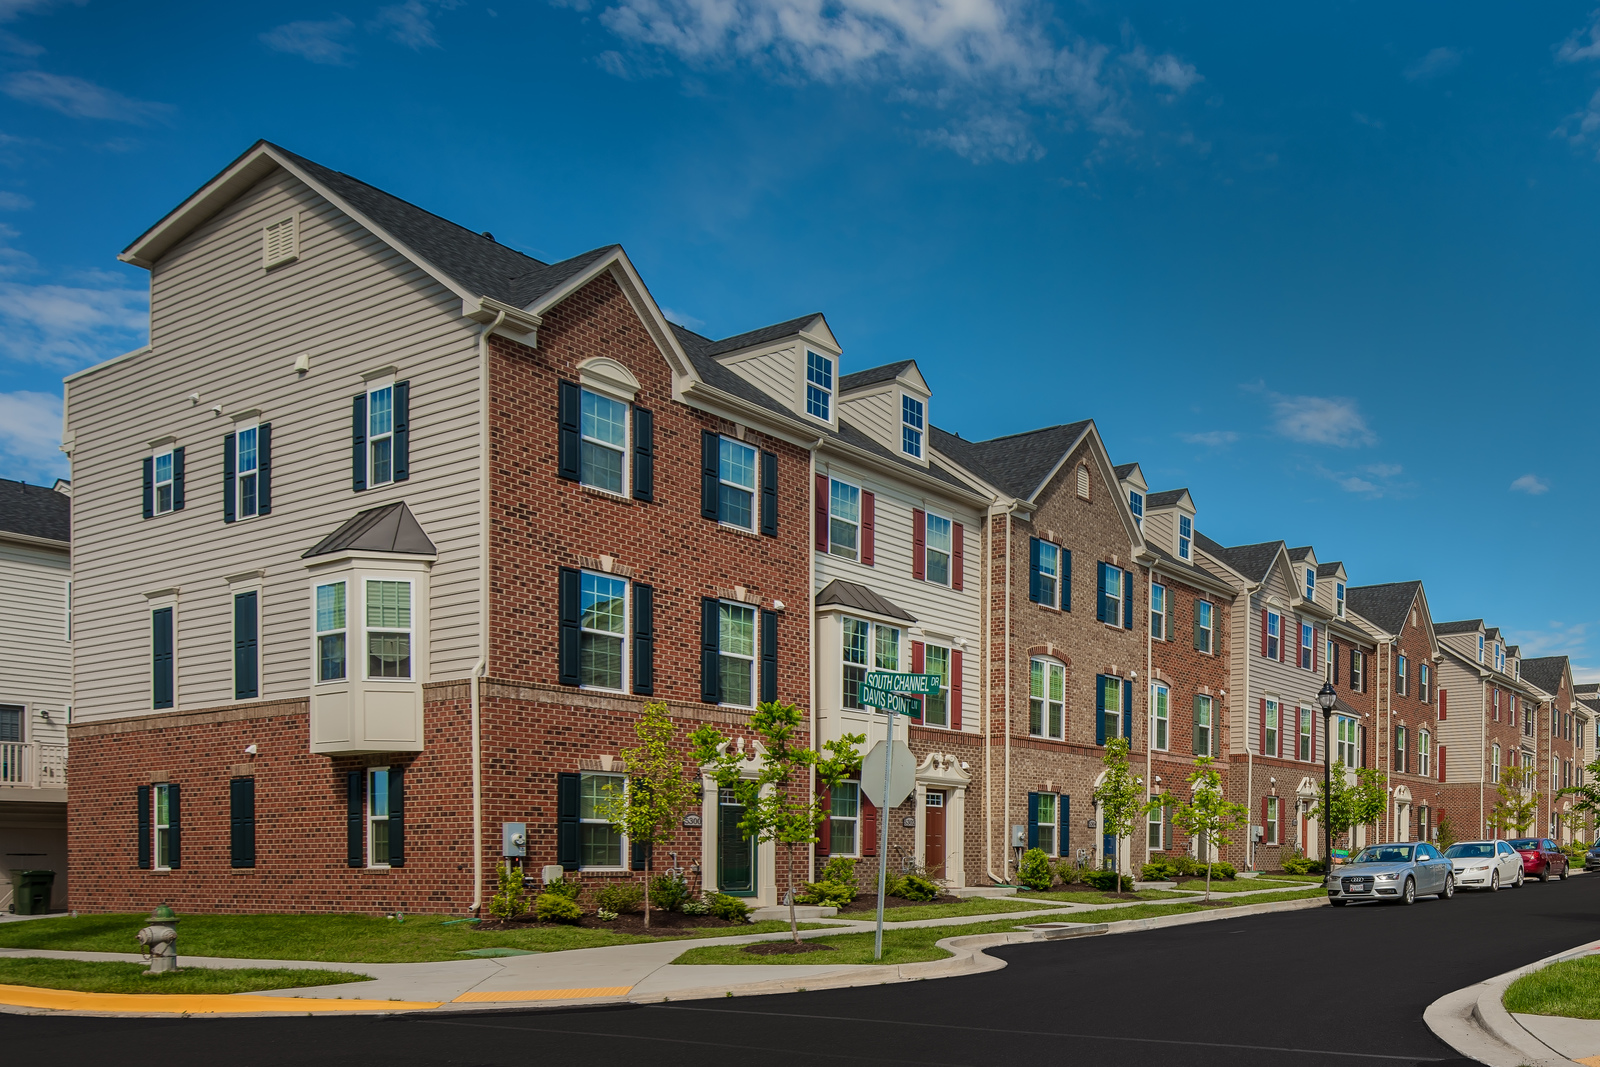 New Homes For Sale At Greenbelt Station In Greenbelt Md